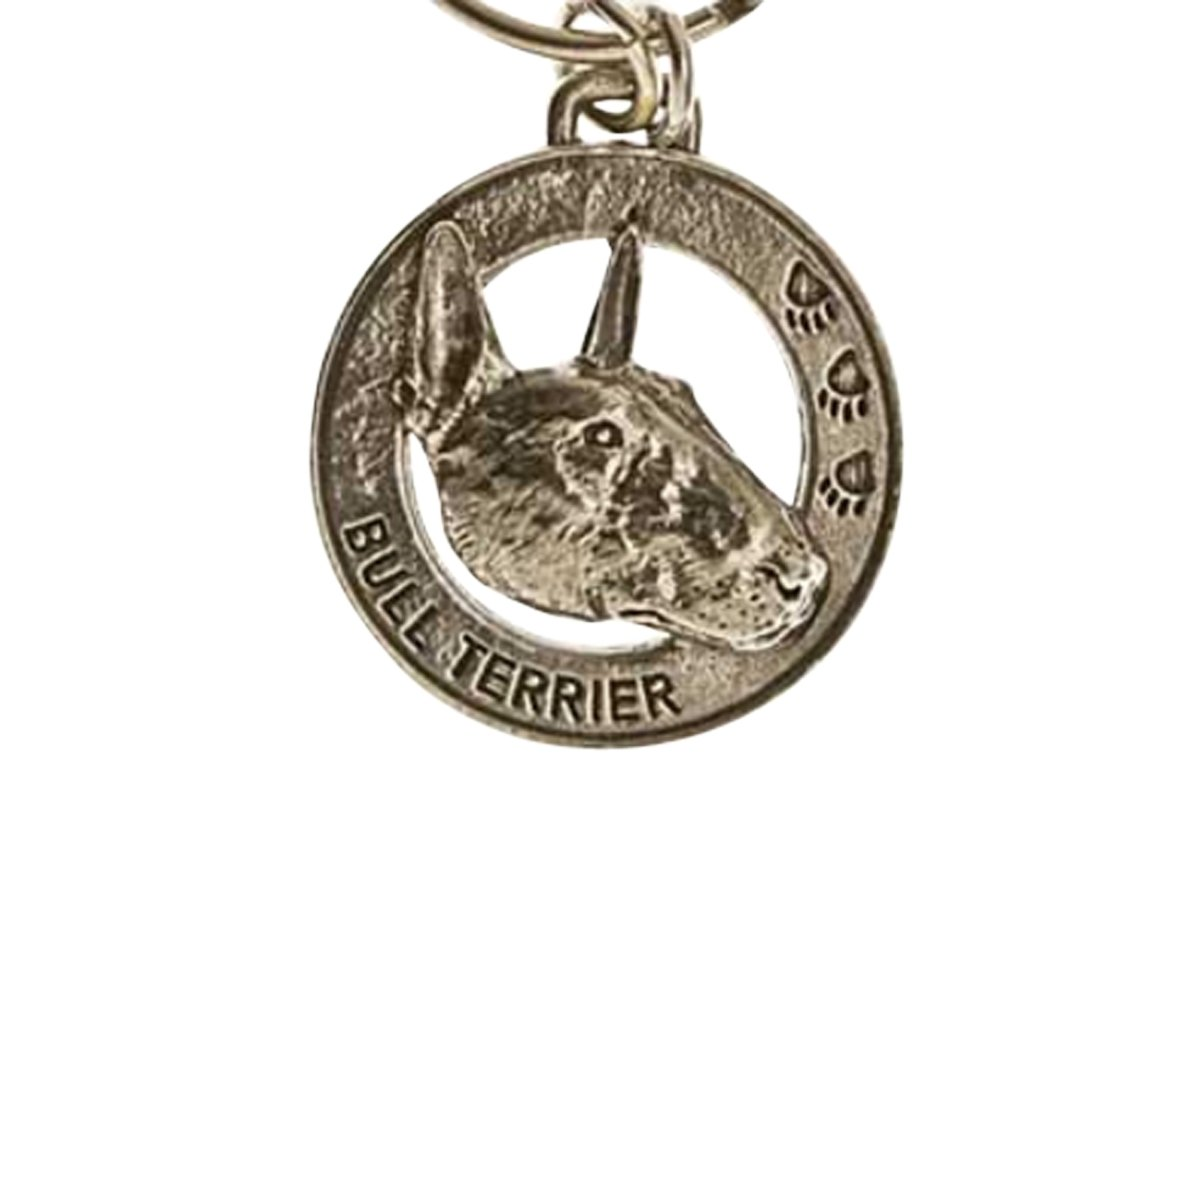 Creative Pewter Designs, Pewter Bull Terrier Key Chain, Antiqued Finish, DK040